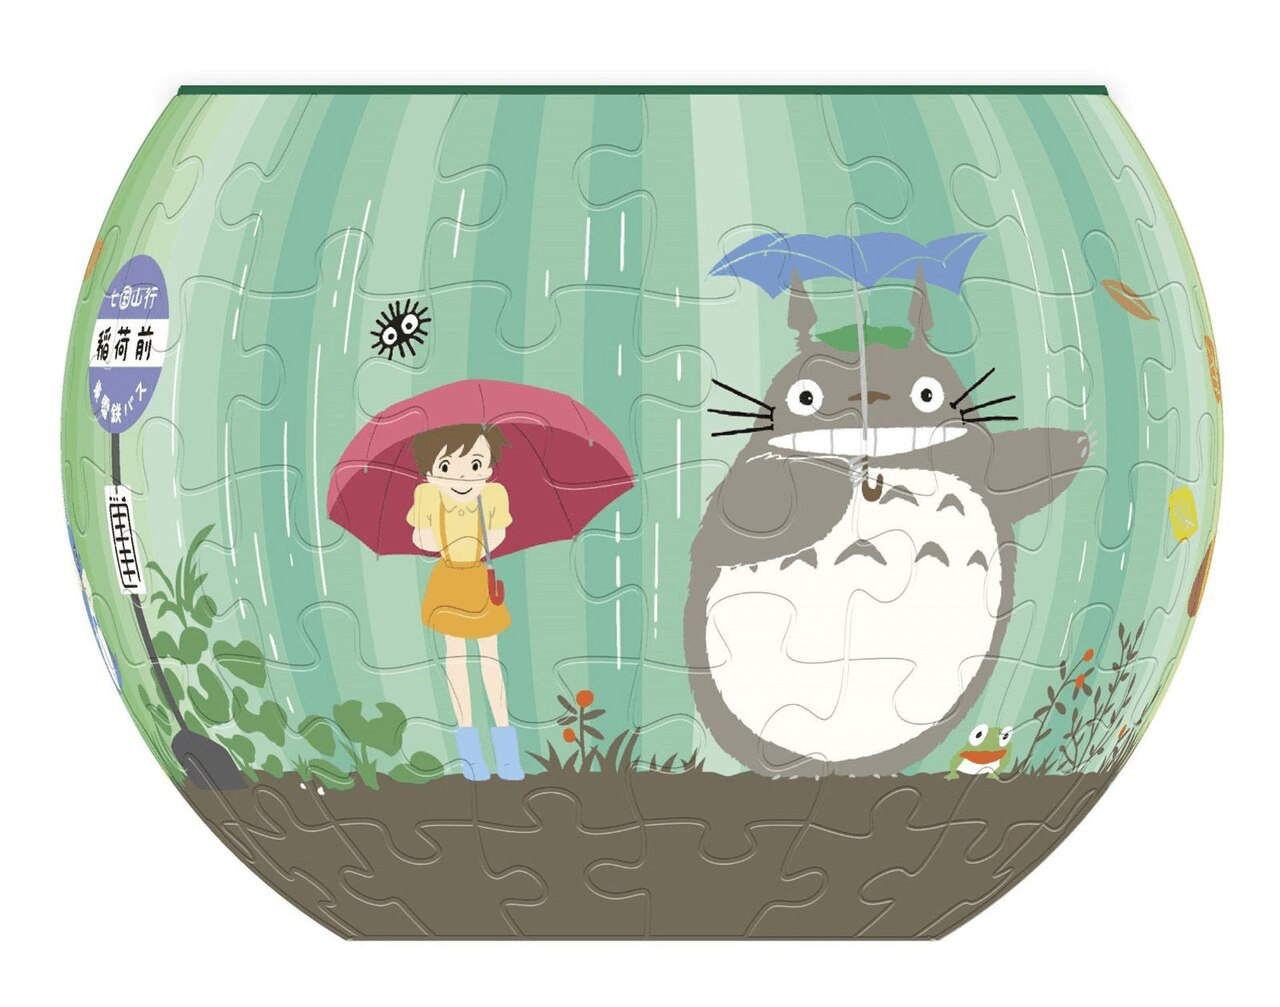 "Ensky AT8-02 Totoro The World Goes Around Puzzle Bowl ""My Neighbor Totoro"", Ensky Art Bowl Jigsaw"